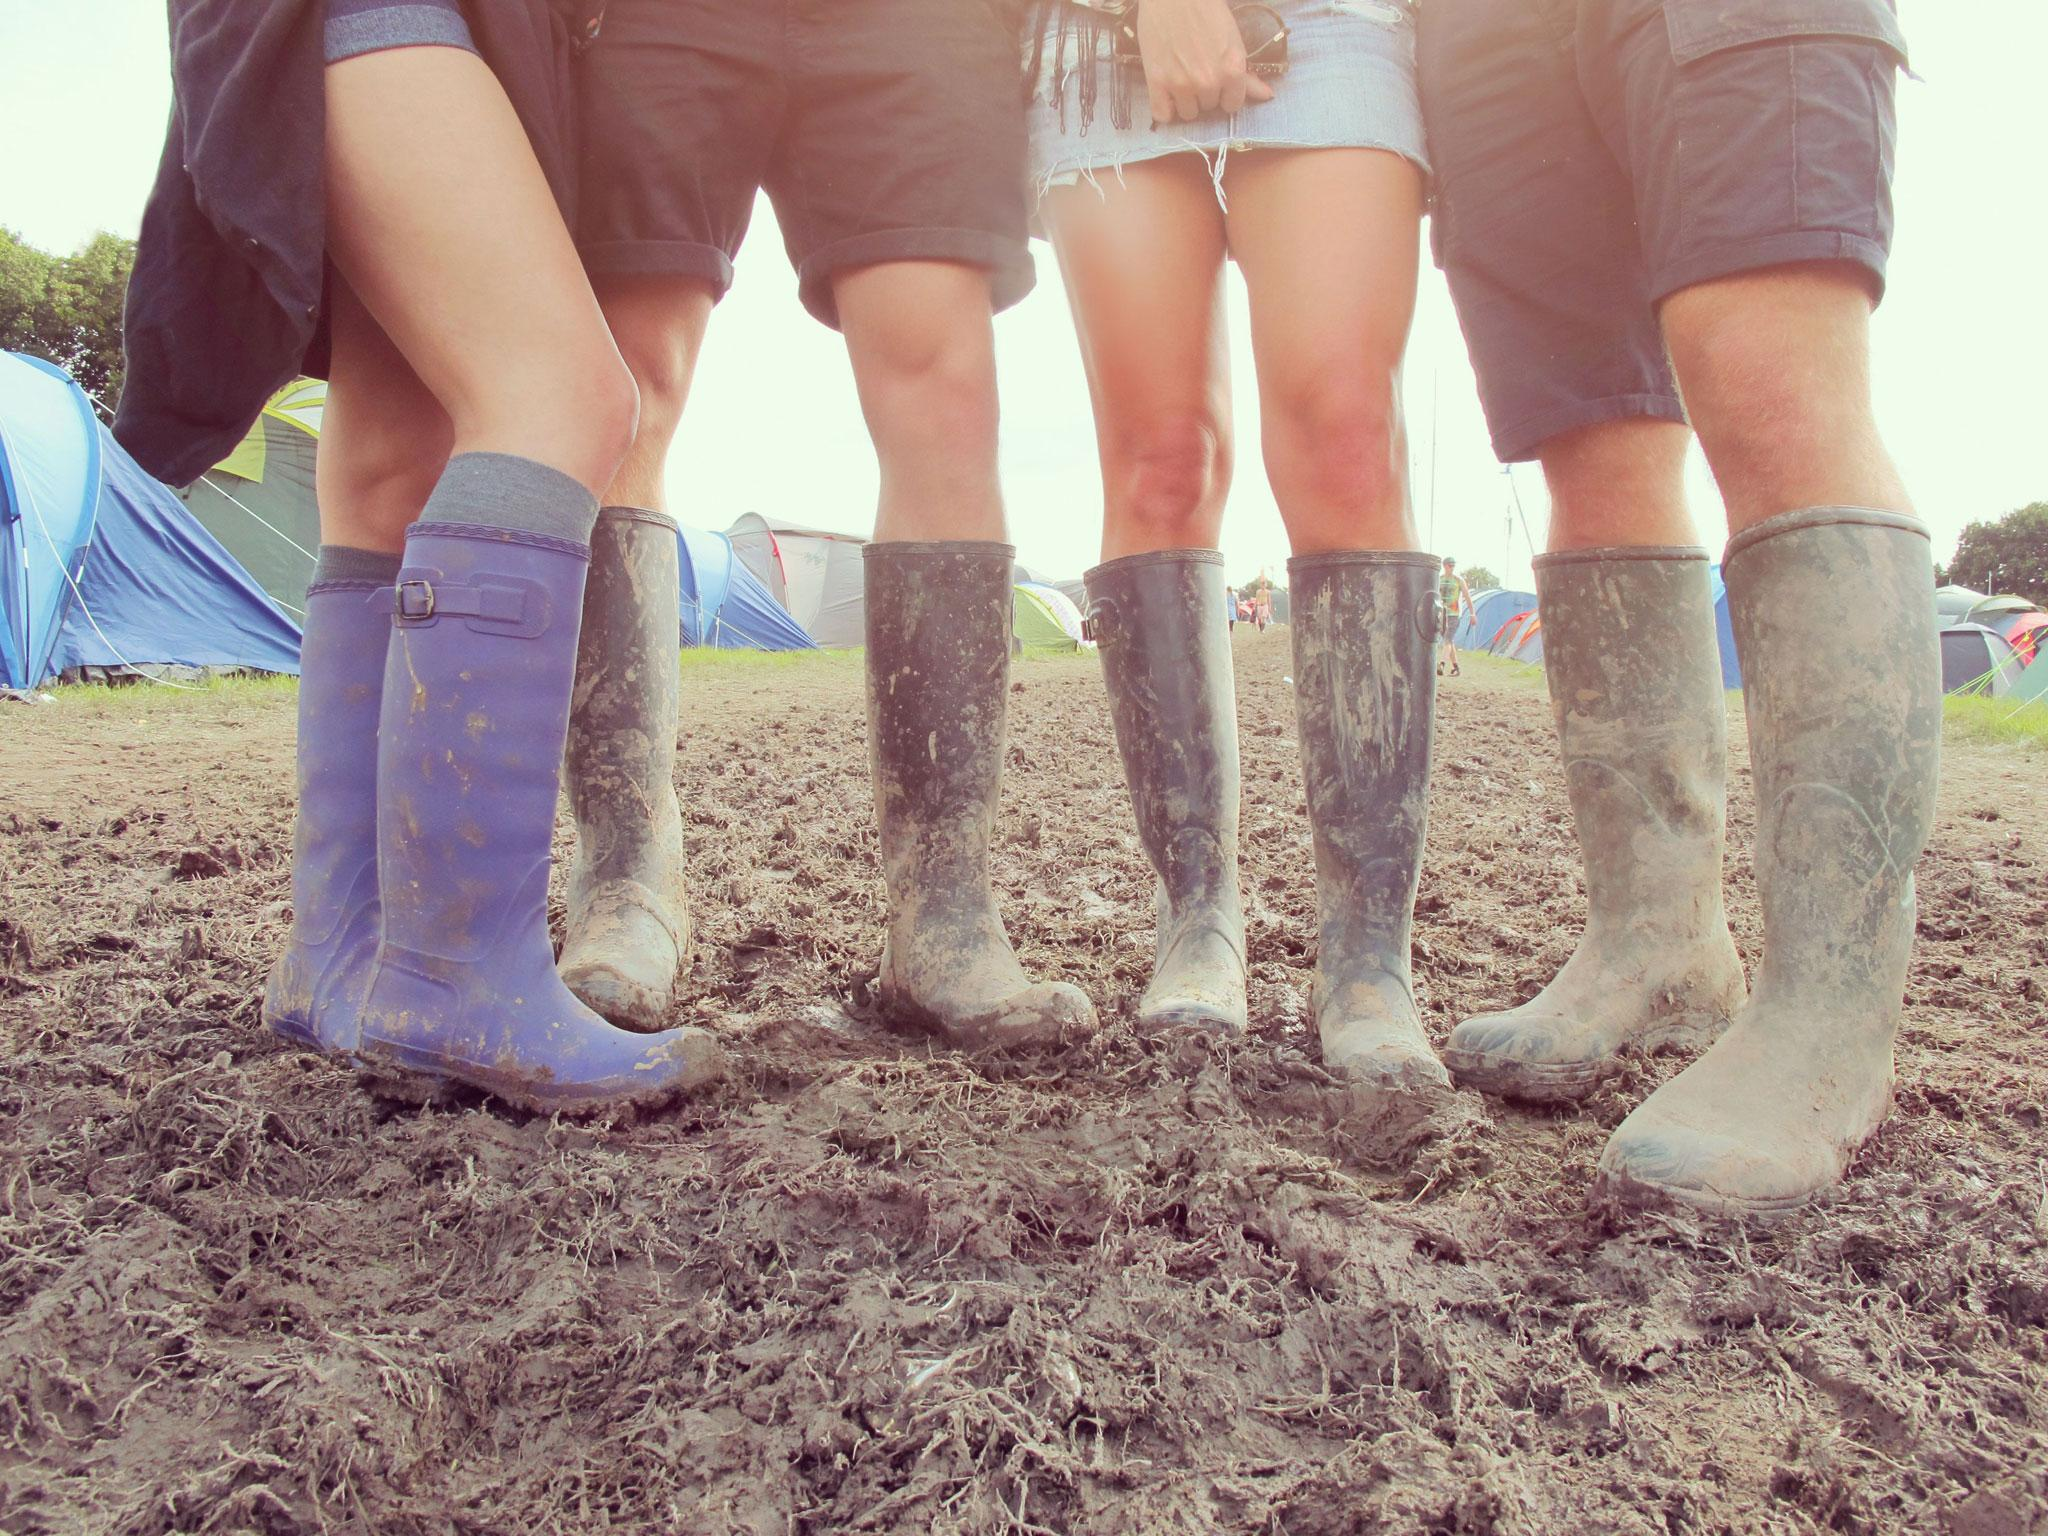 10 best festival wellies for women | The Independent